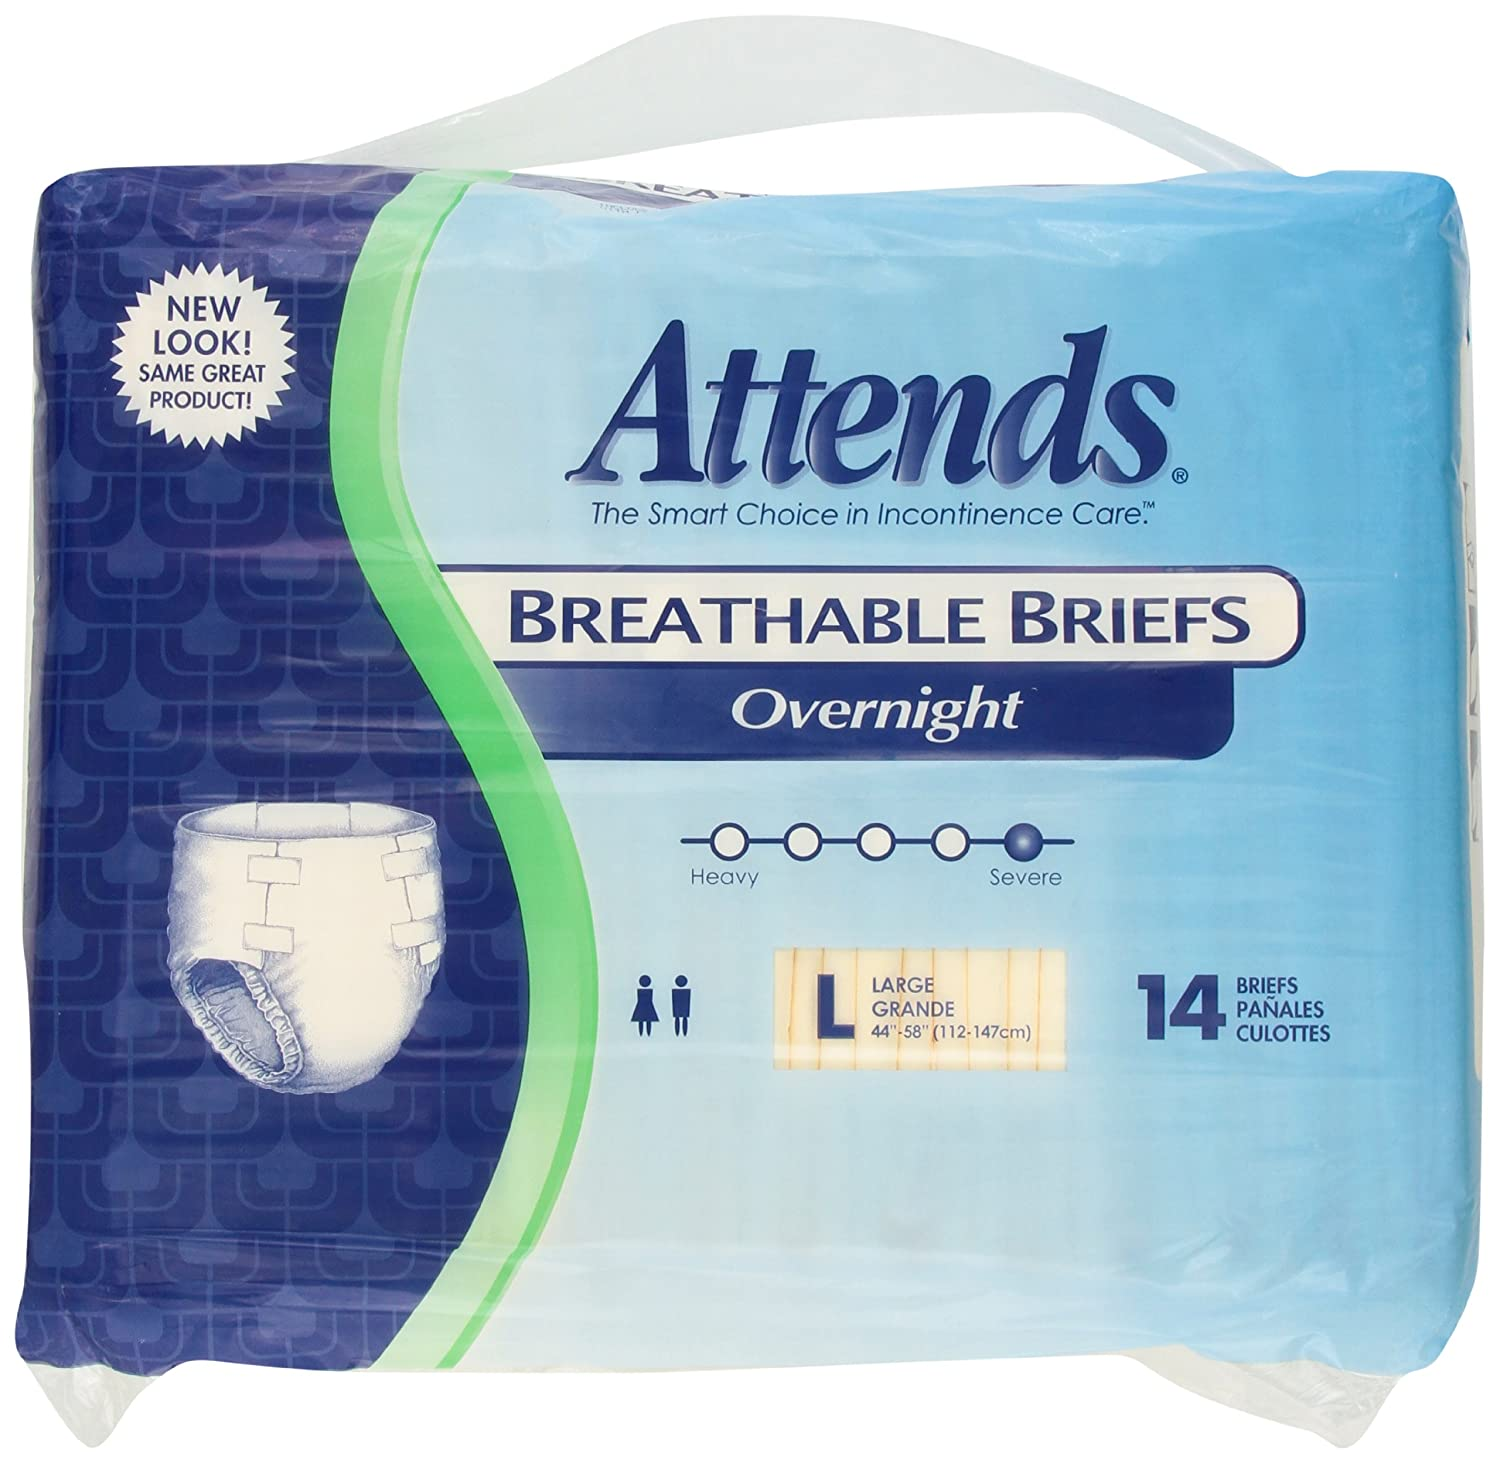 Amazon.com: Attends Overnight Breathable Briefs size Large, 14 Count: Health & Personal Care